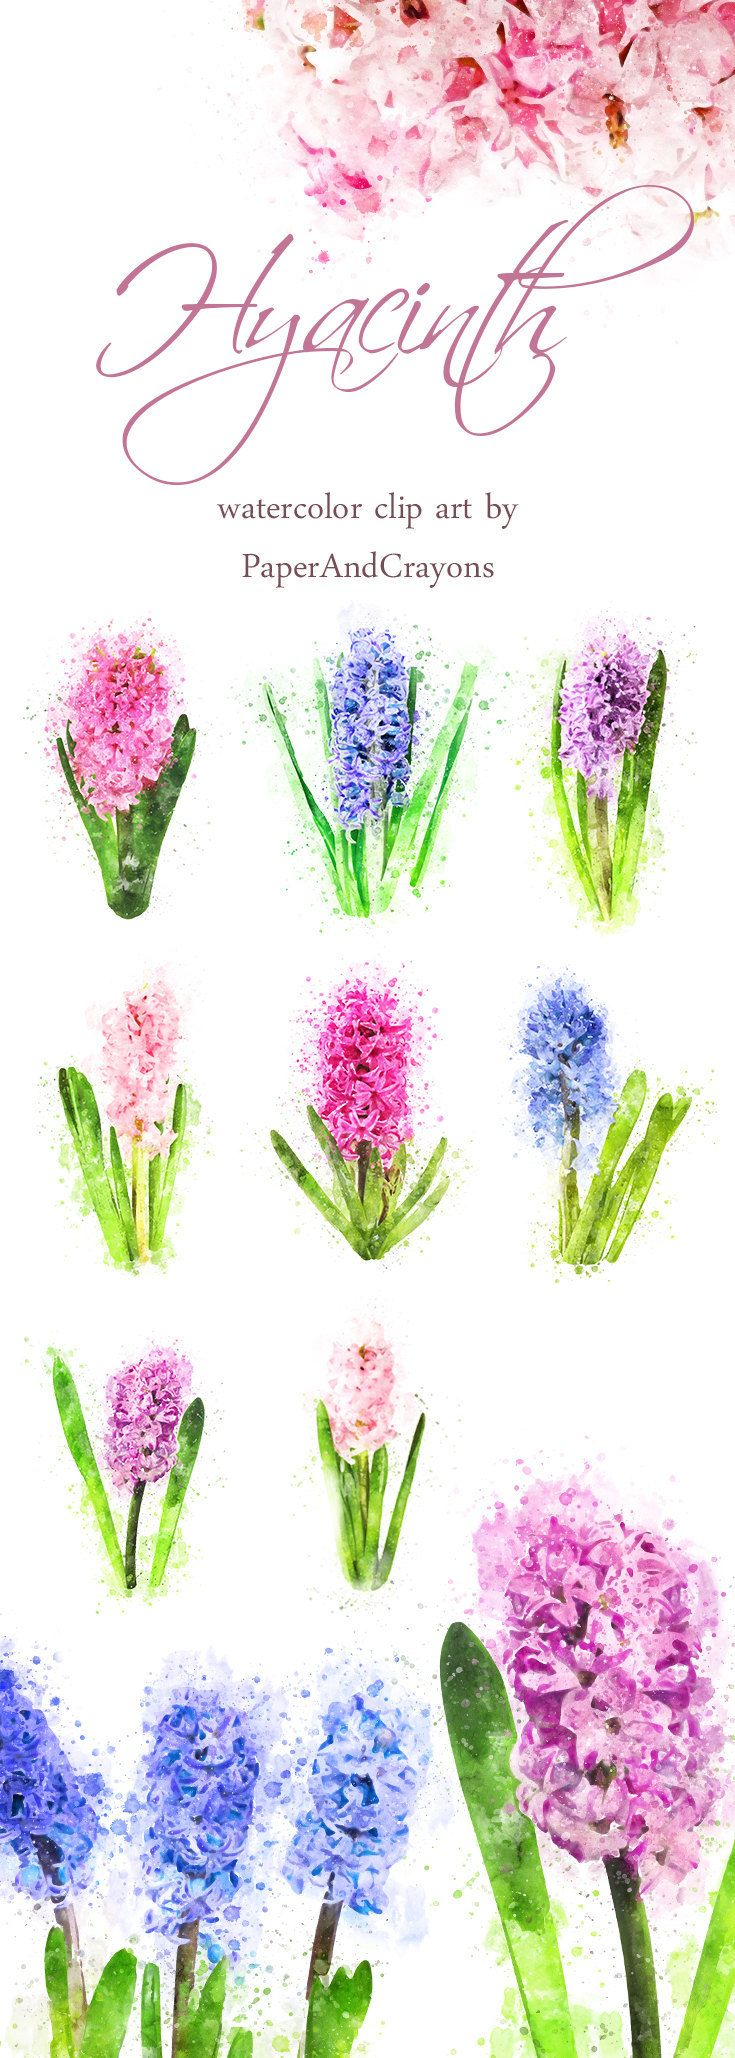 Hyacinth floral clipart spring watercolor clipart flower